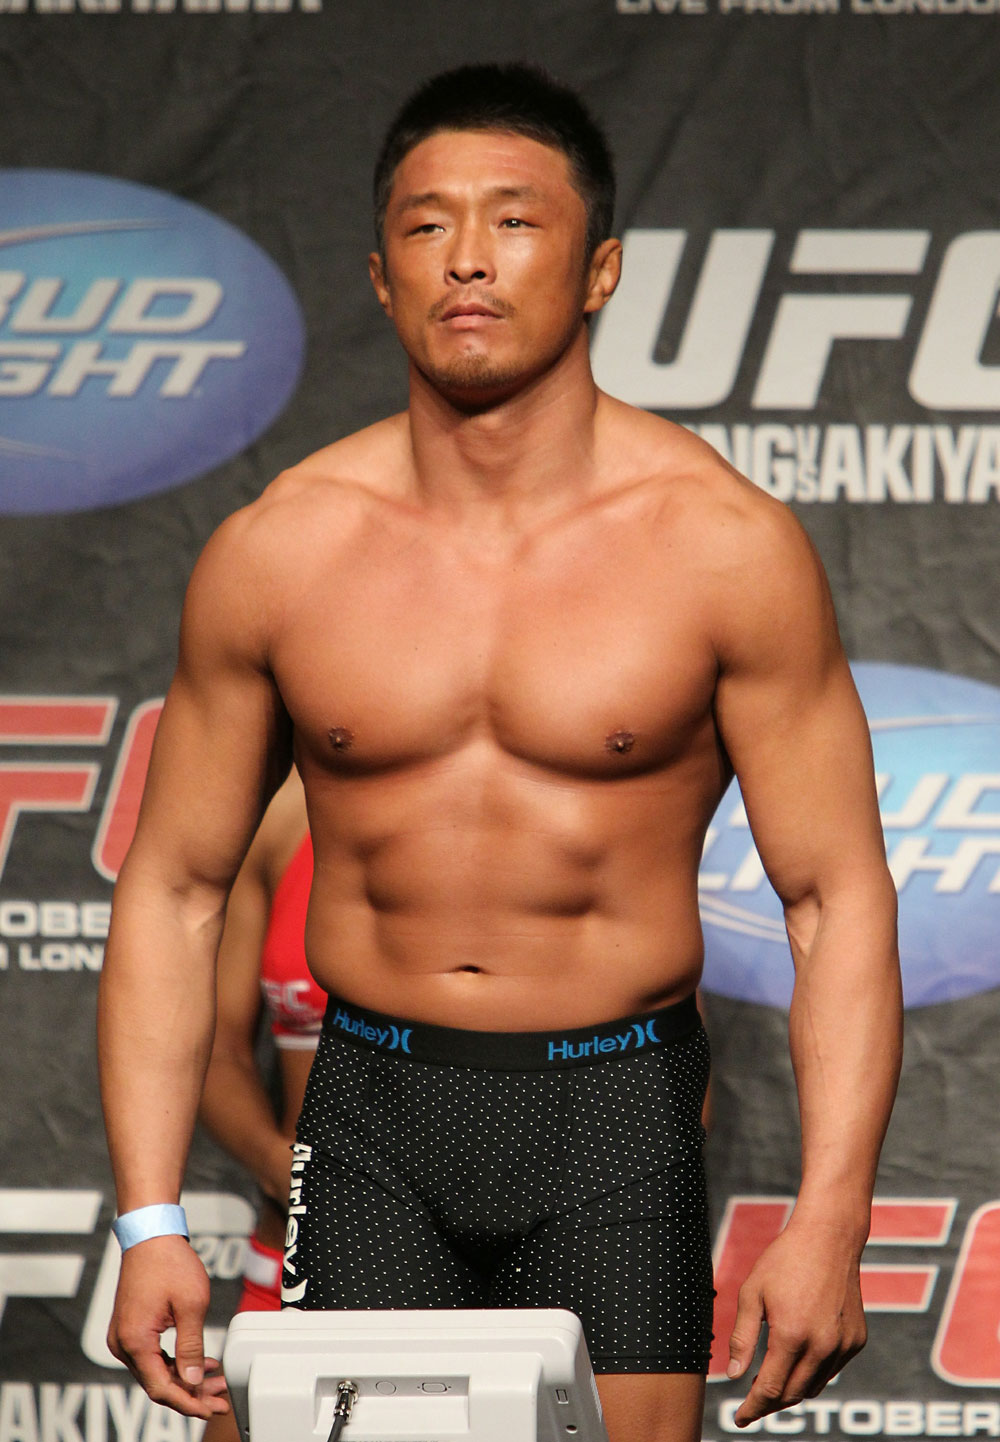 UFC 120 Weigh-Ins: Akiyama Yoshihiro